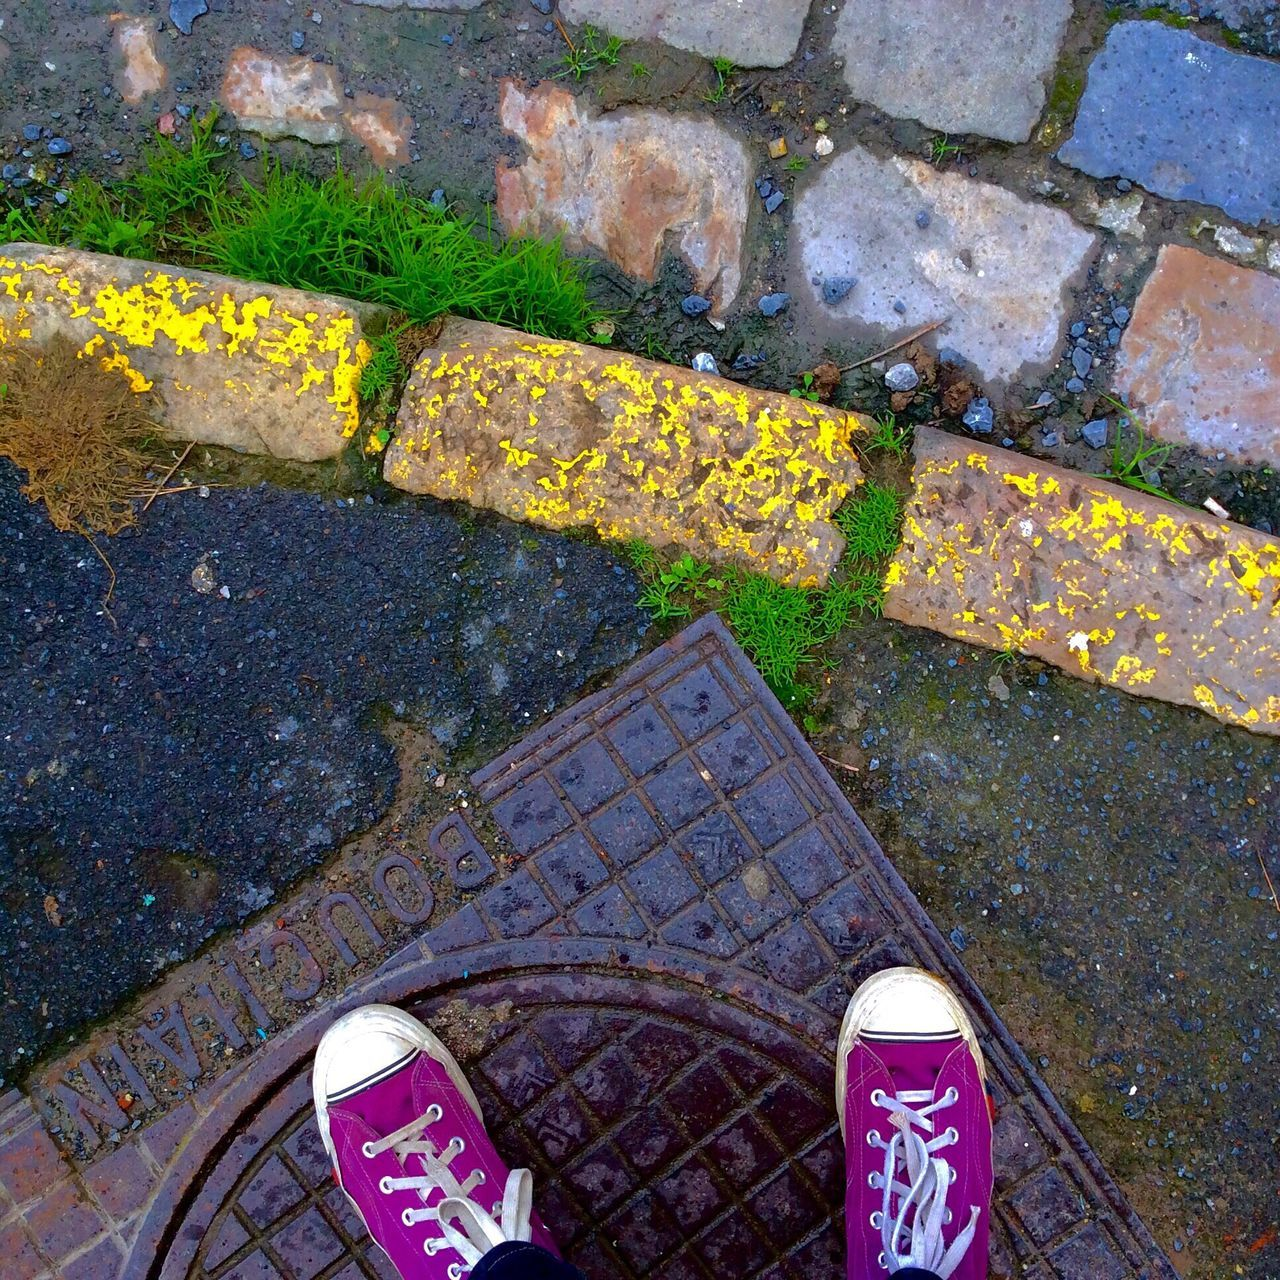 high angle view, shoe, day, outdoors, street, sidewalk, low section, real people, sewage, manhole, one person, gutter, stone tile, standing, puddle, human body part, water, close-up, people